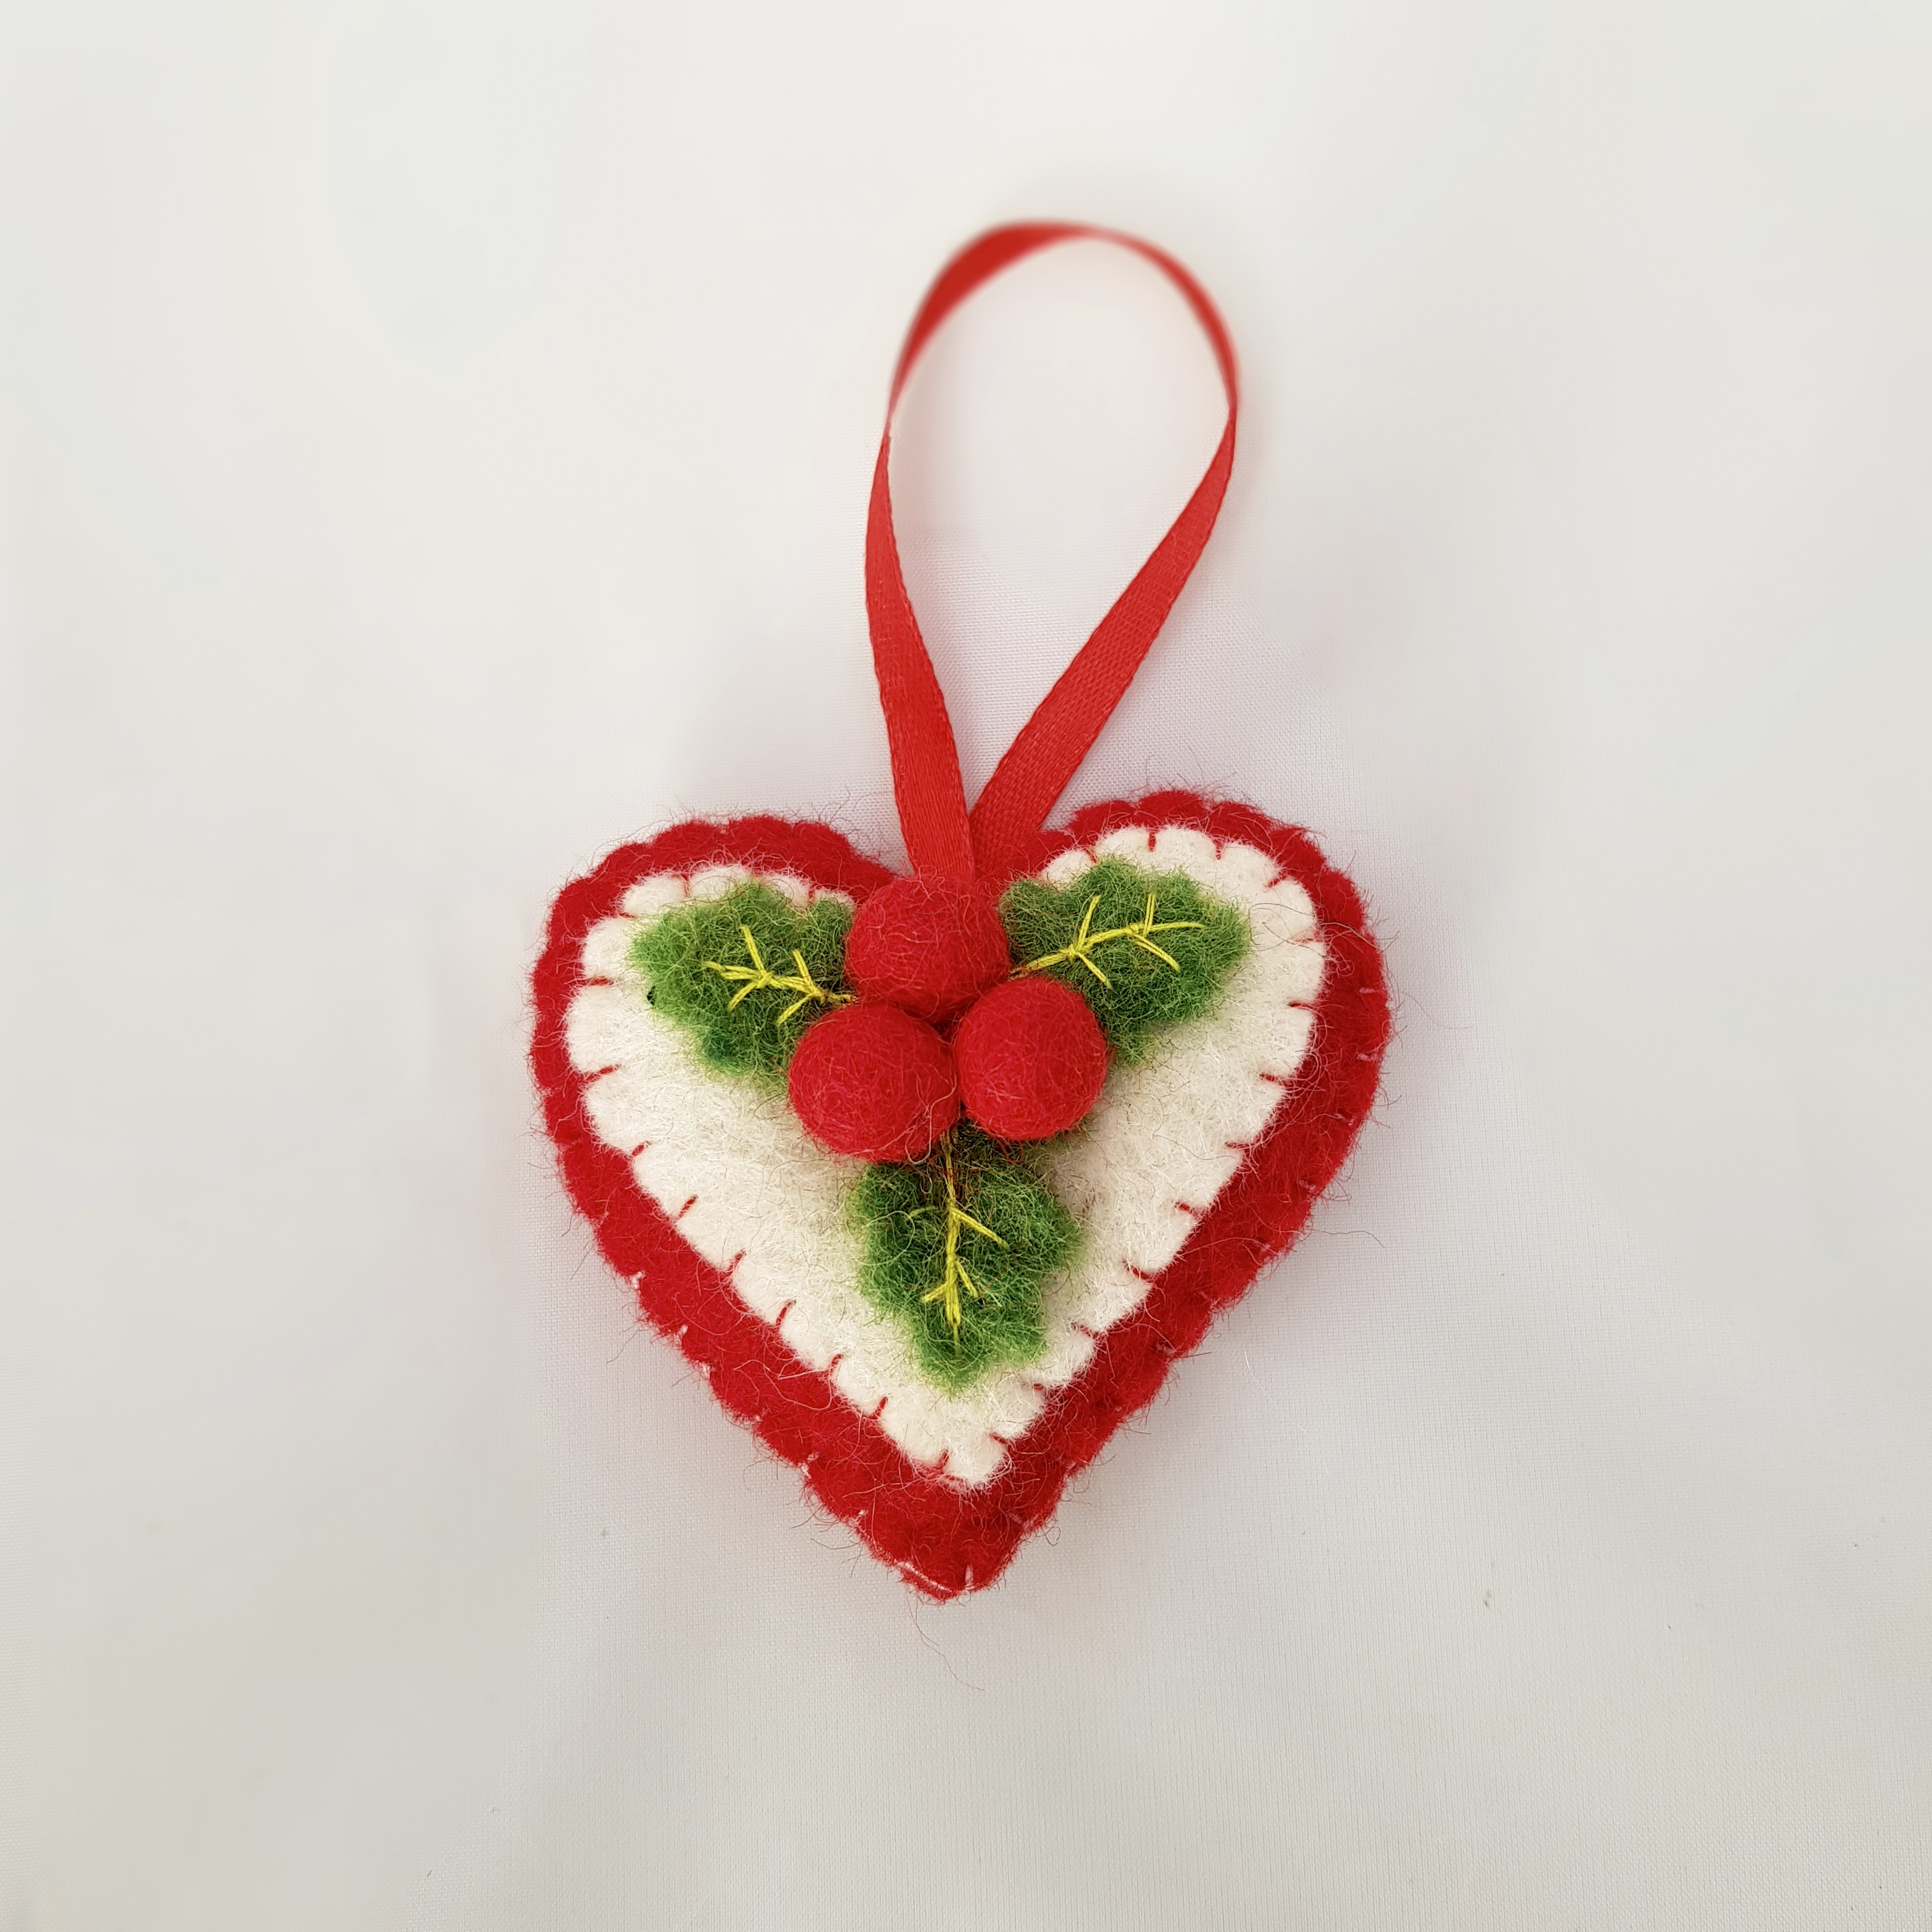 Heart with holly tree hanging.